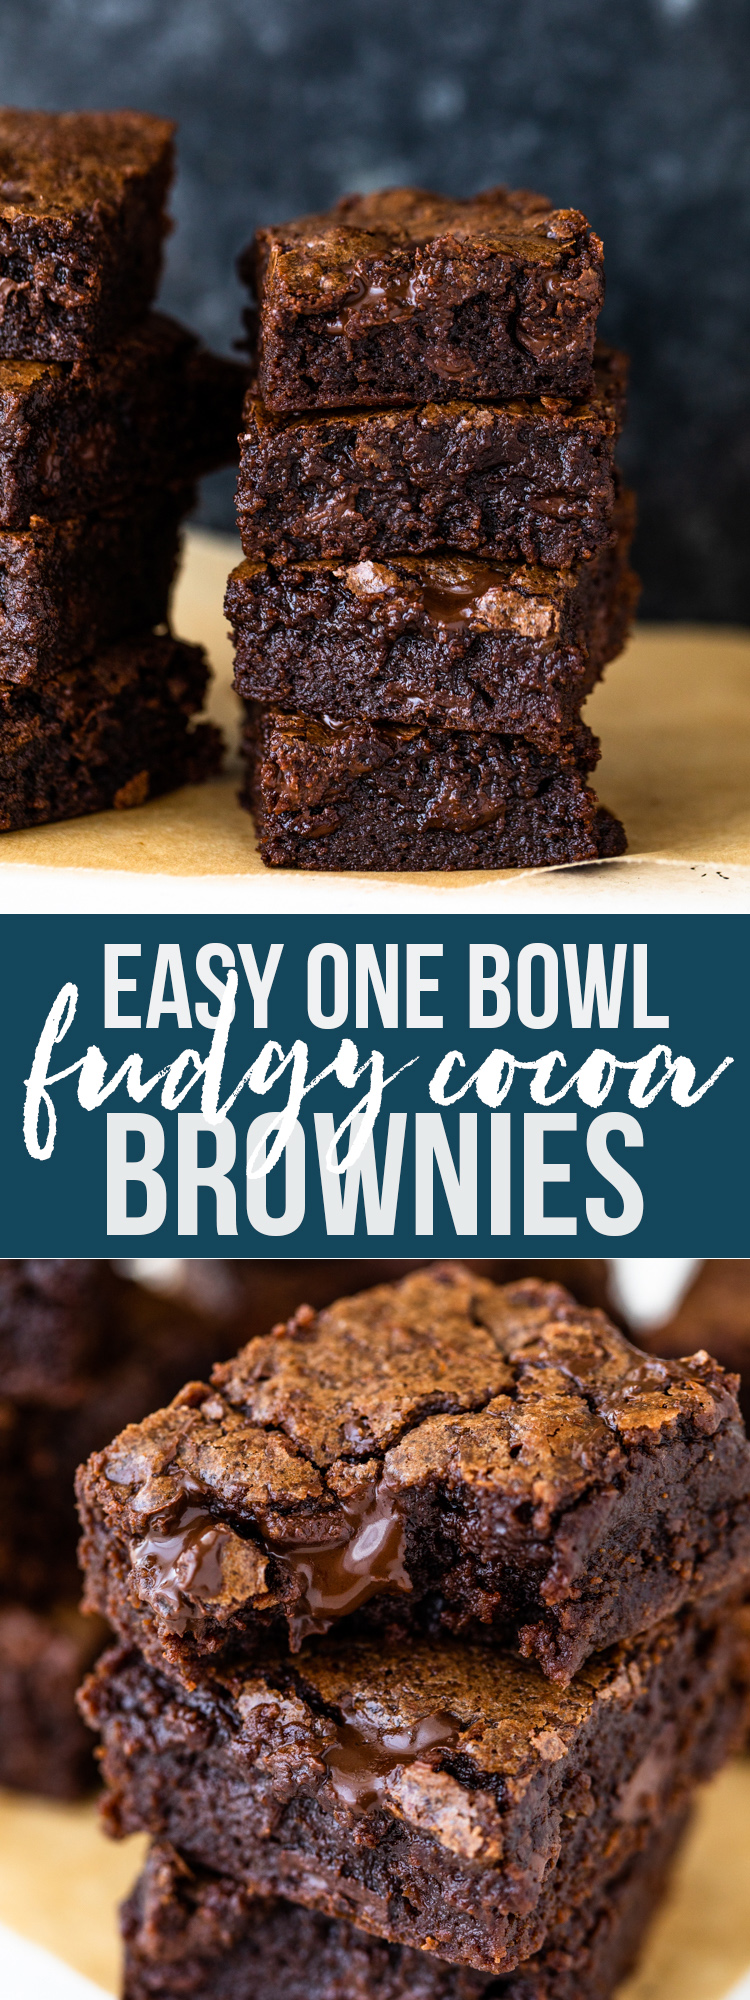 Easy One Bowl Fudgy Cocoa Brownies Gimme Delicious